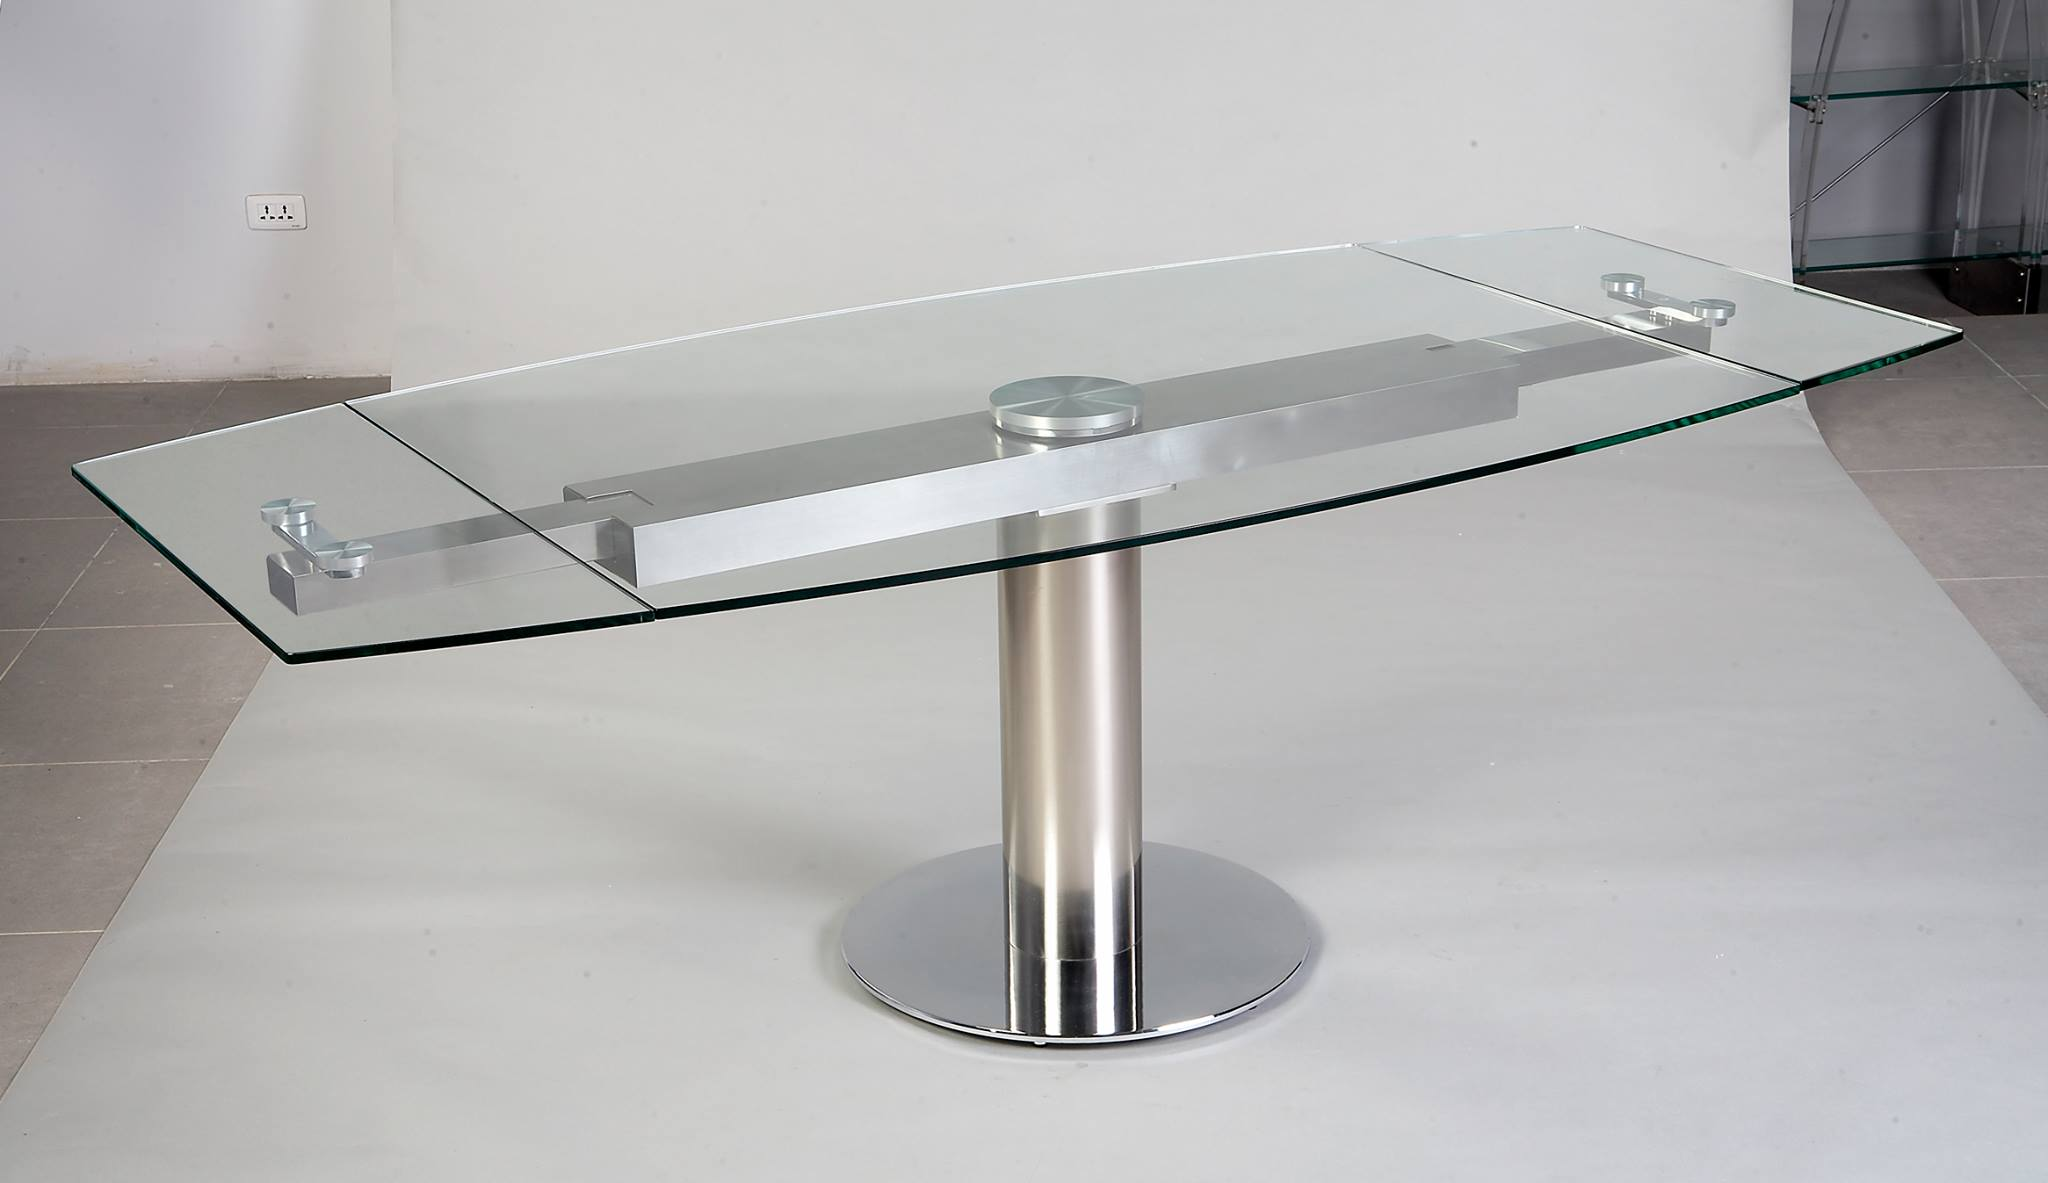 Table verre pied central allonge for Table de salle a manger avec rallonge